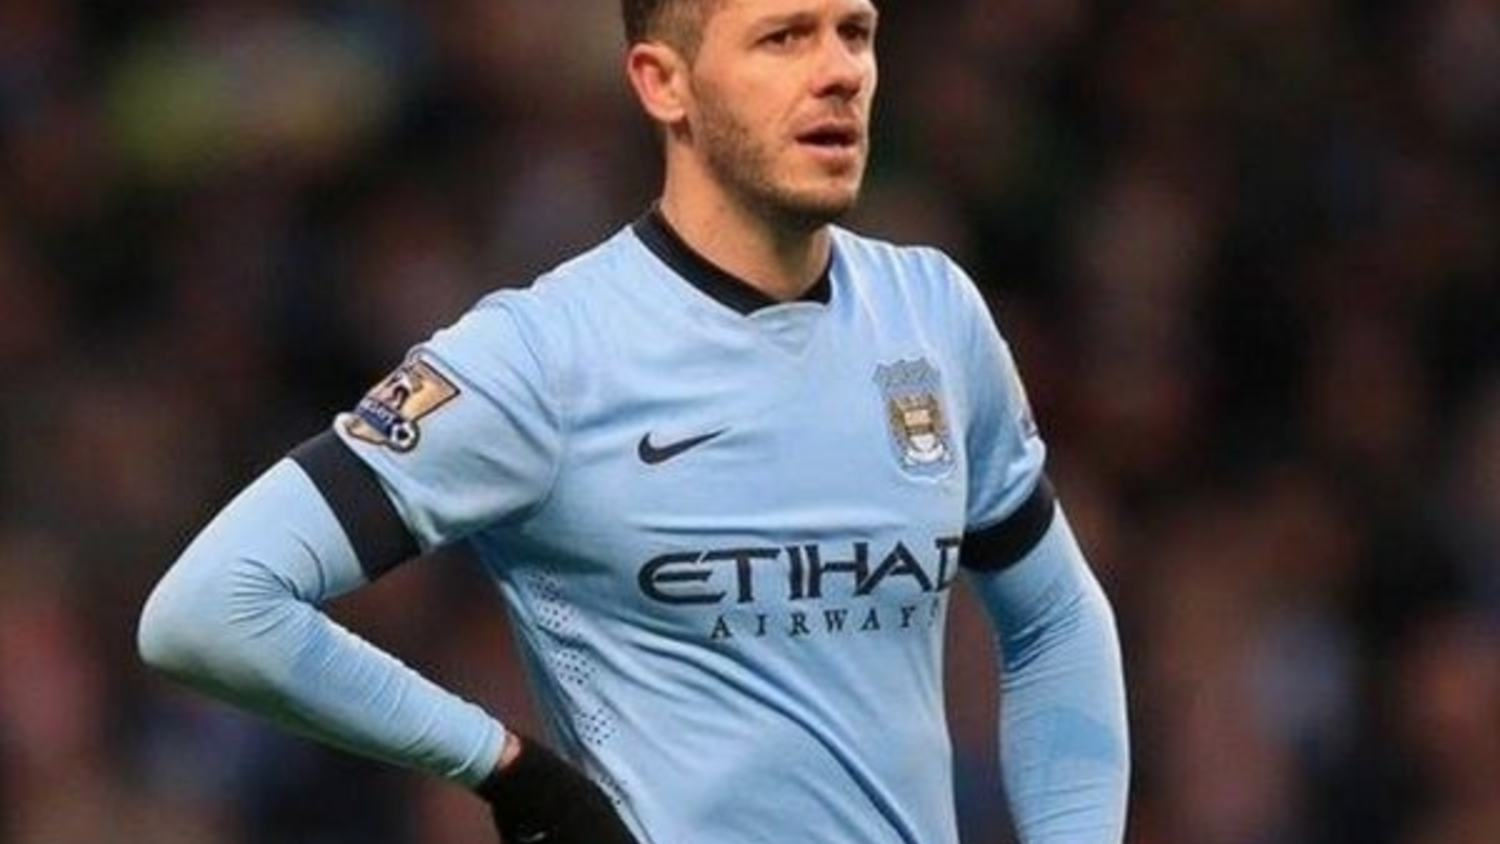 How the internet reacted to Martin Demichelis' Manchester derby nightmare